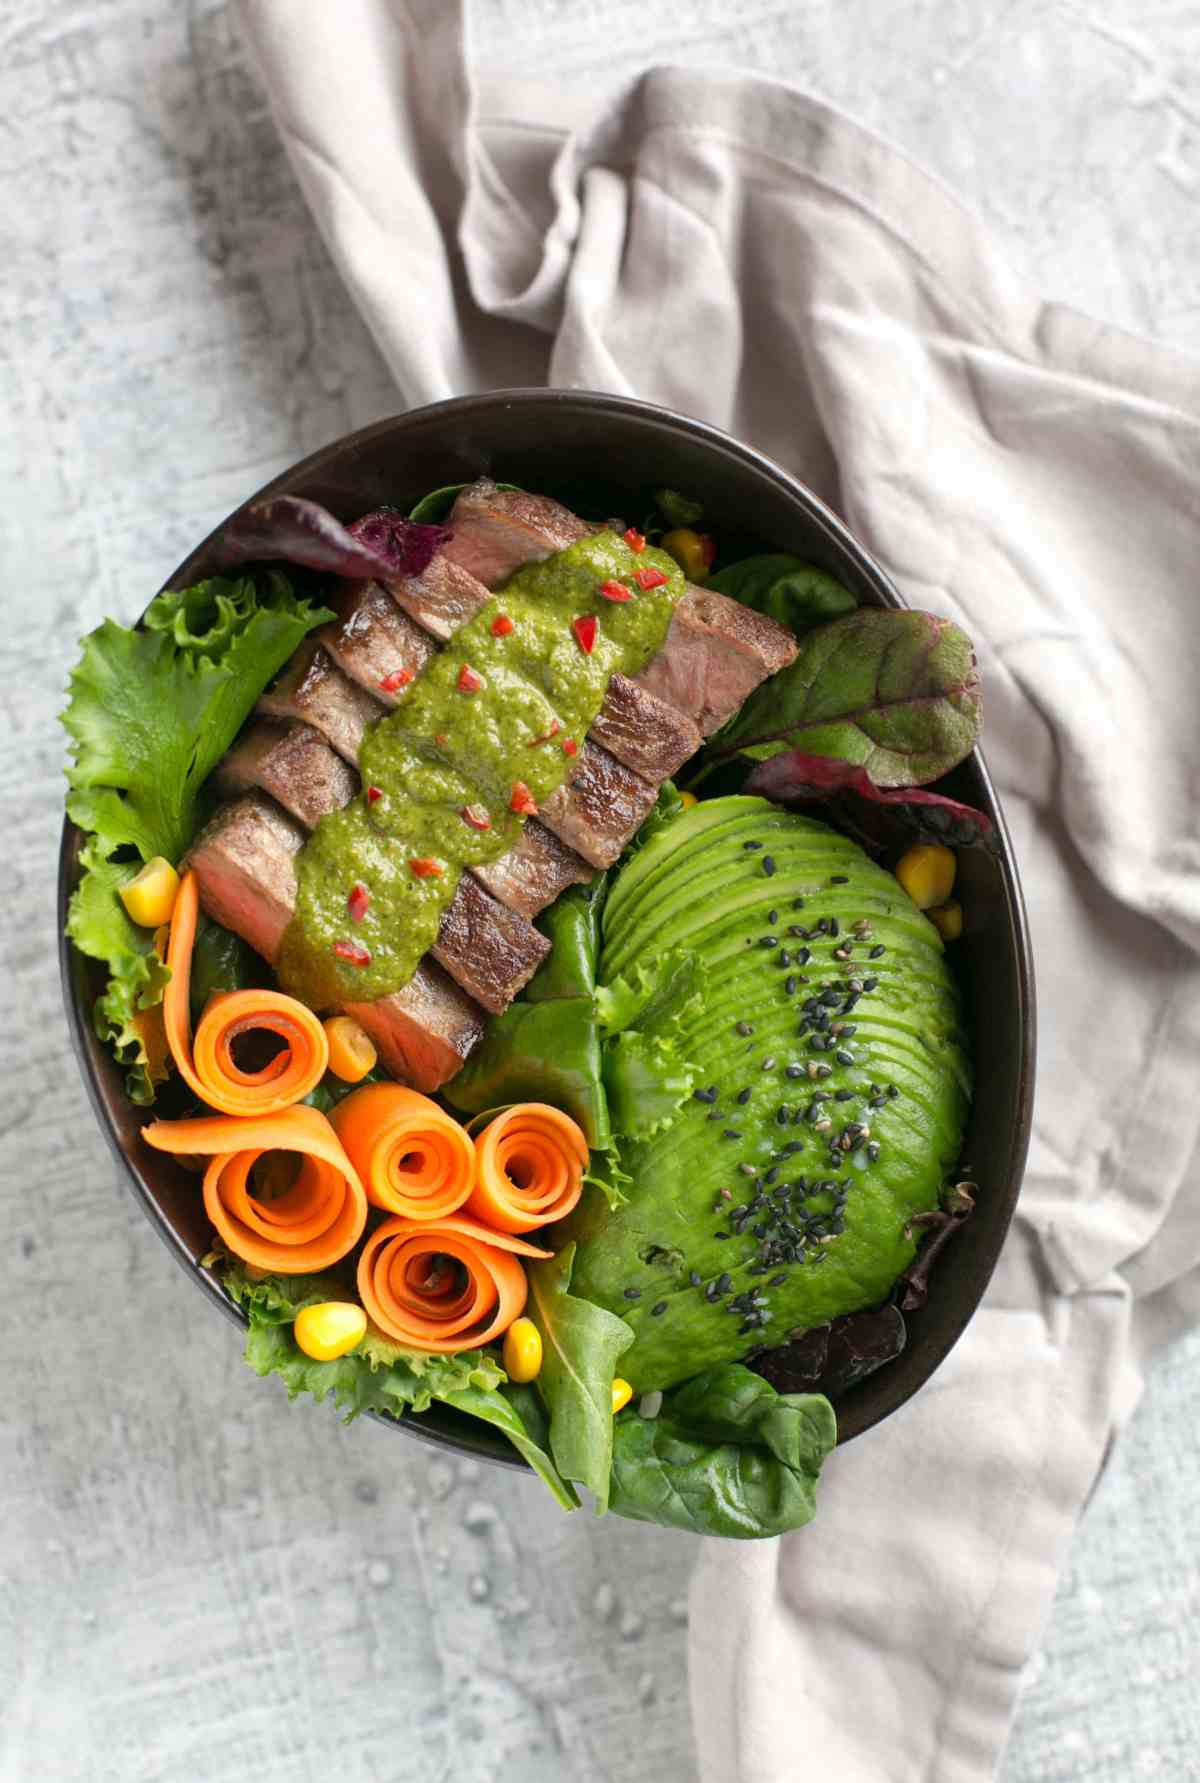 This vibrant Irish Steak Salad Bowl with Chimichurri Sauce is loaded with veggies, high in protein and naturally gluten-free. The perfect meal to enjoy all summer long! Recipe from The Petite Cook